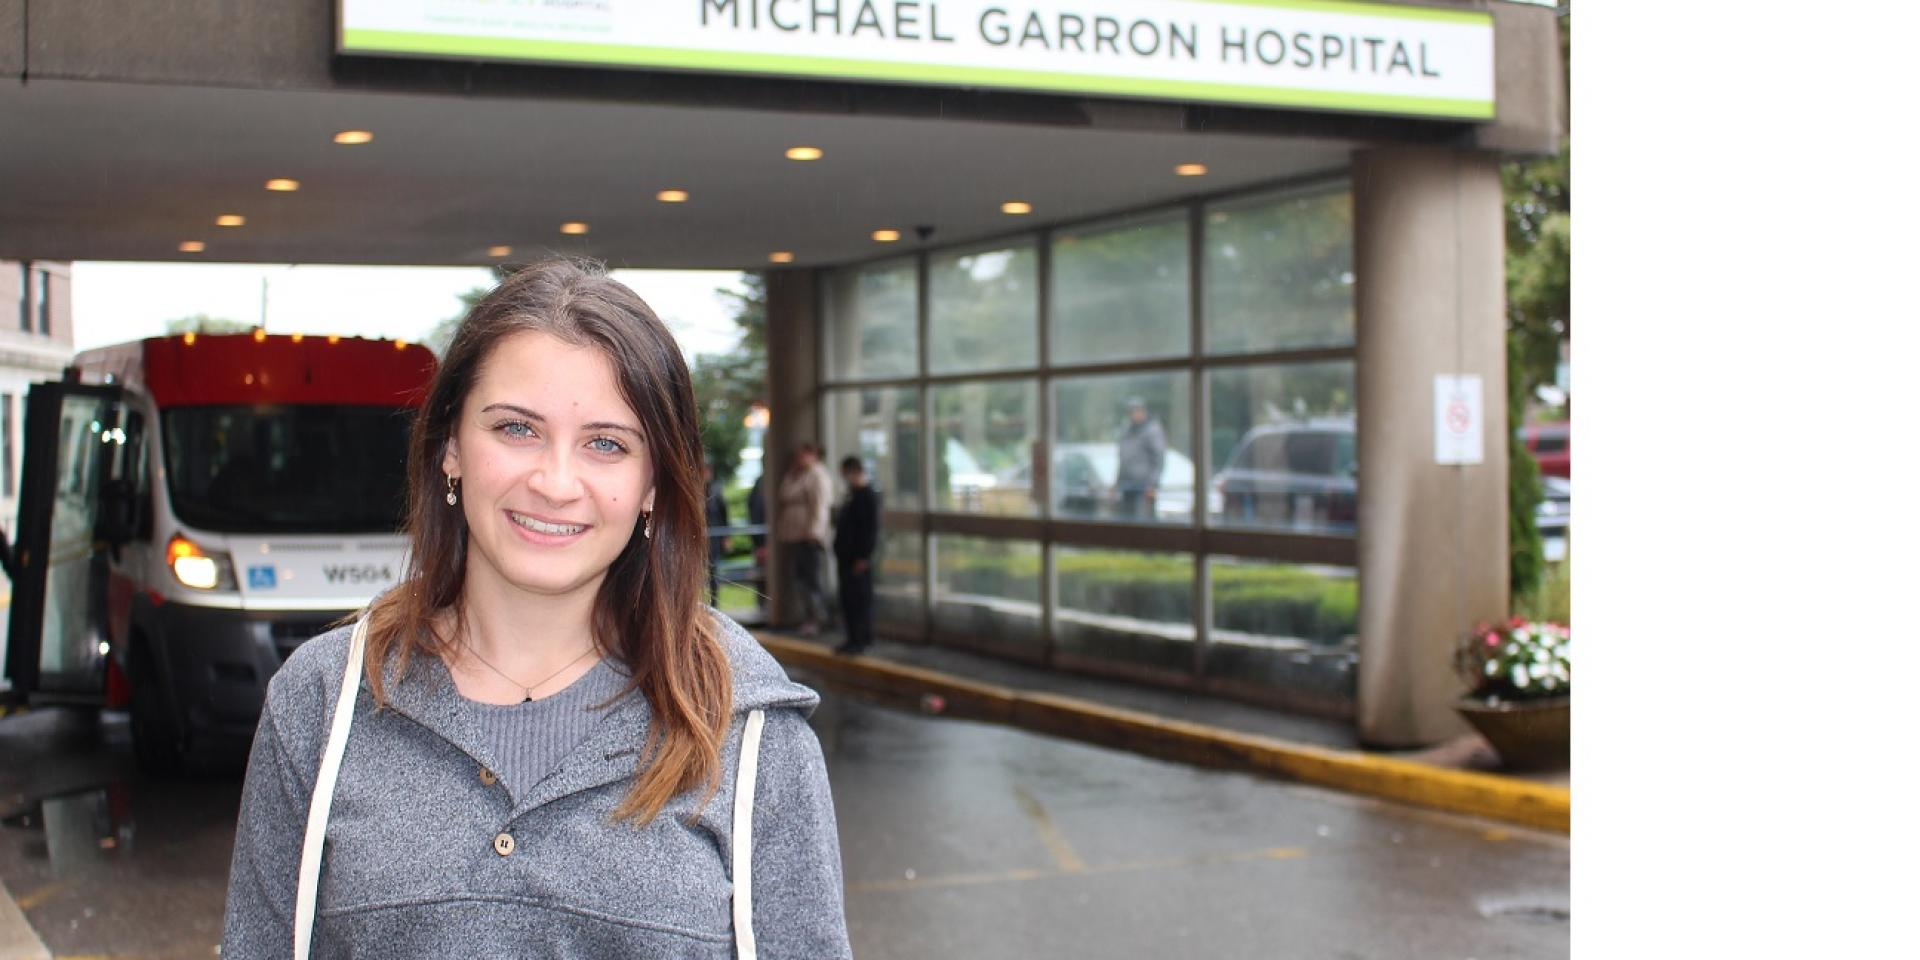 Matina Michelis in front of Michael Garron Hospital